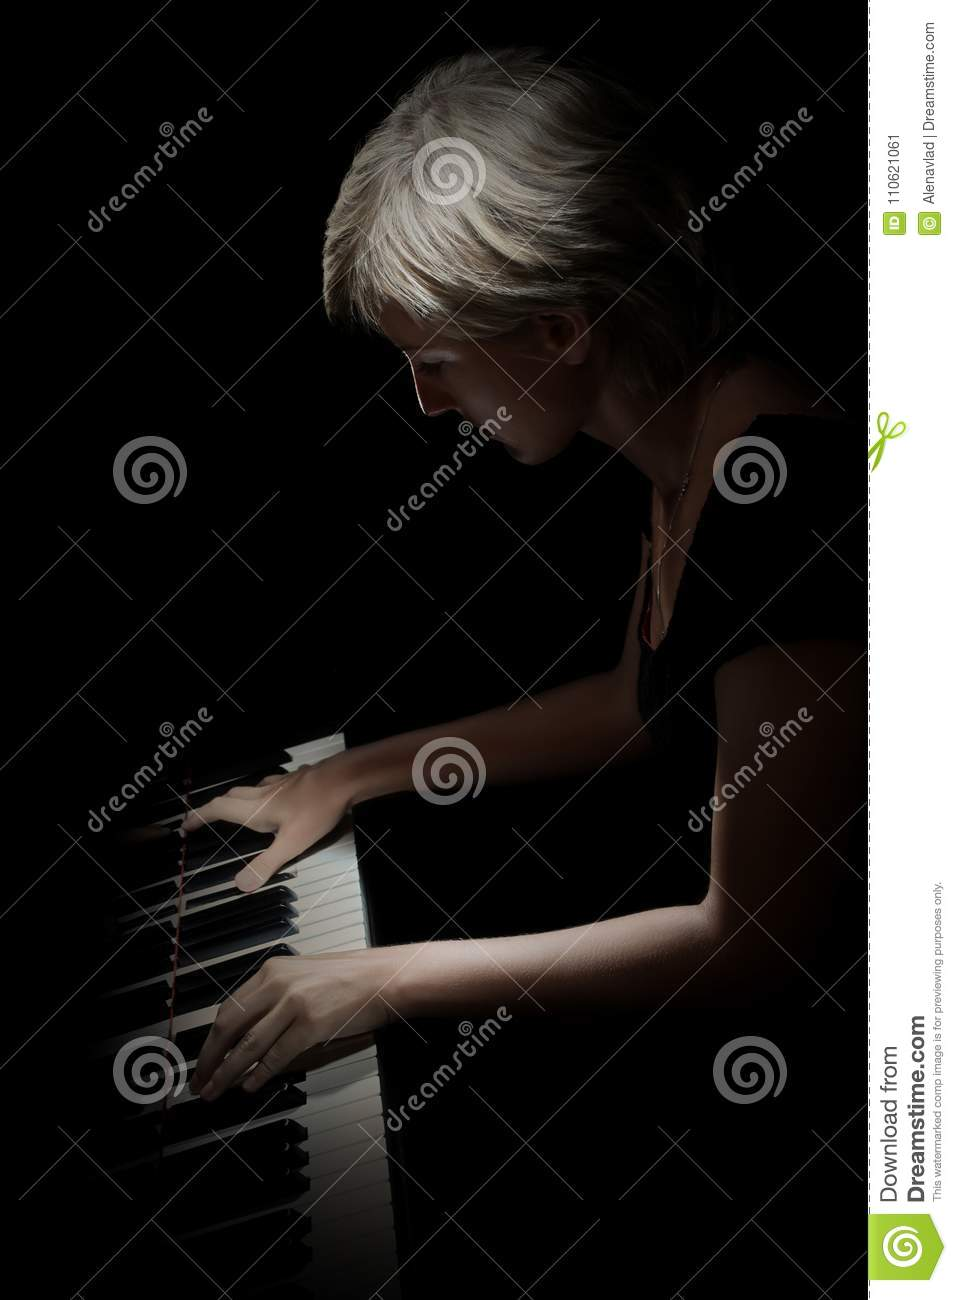 Piano Player  Pianist Playing Piano Stock Image - Image of keys